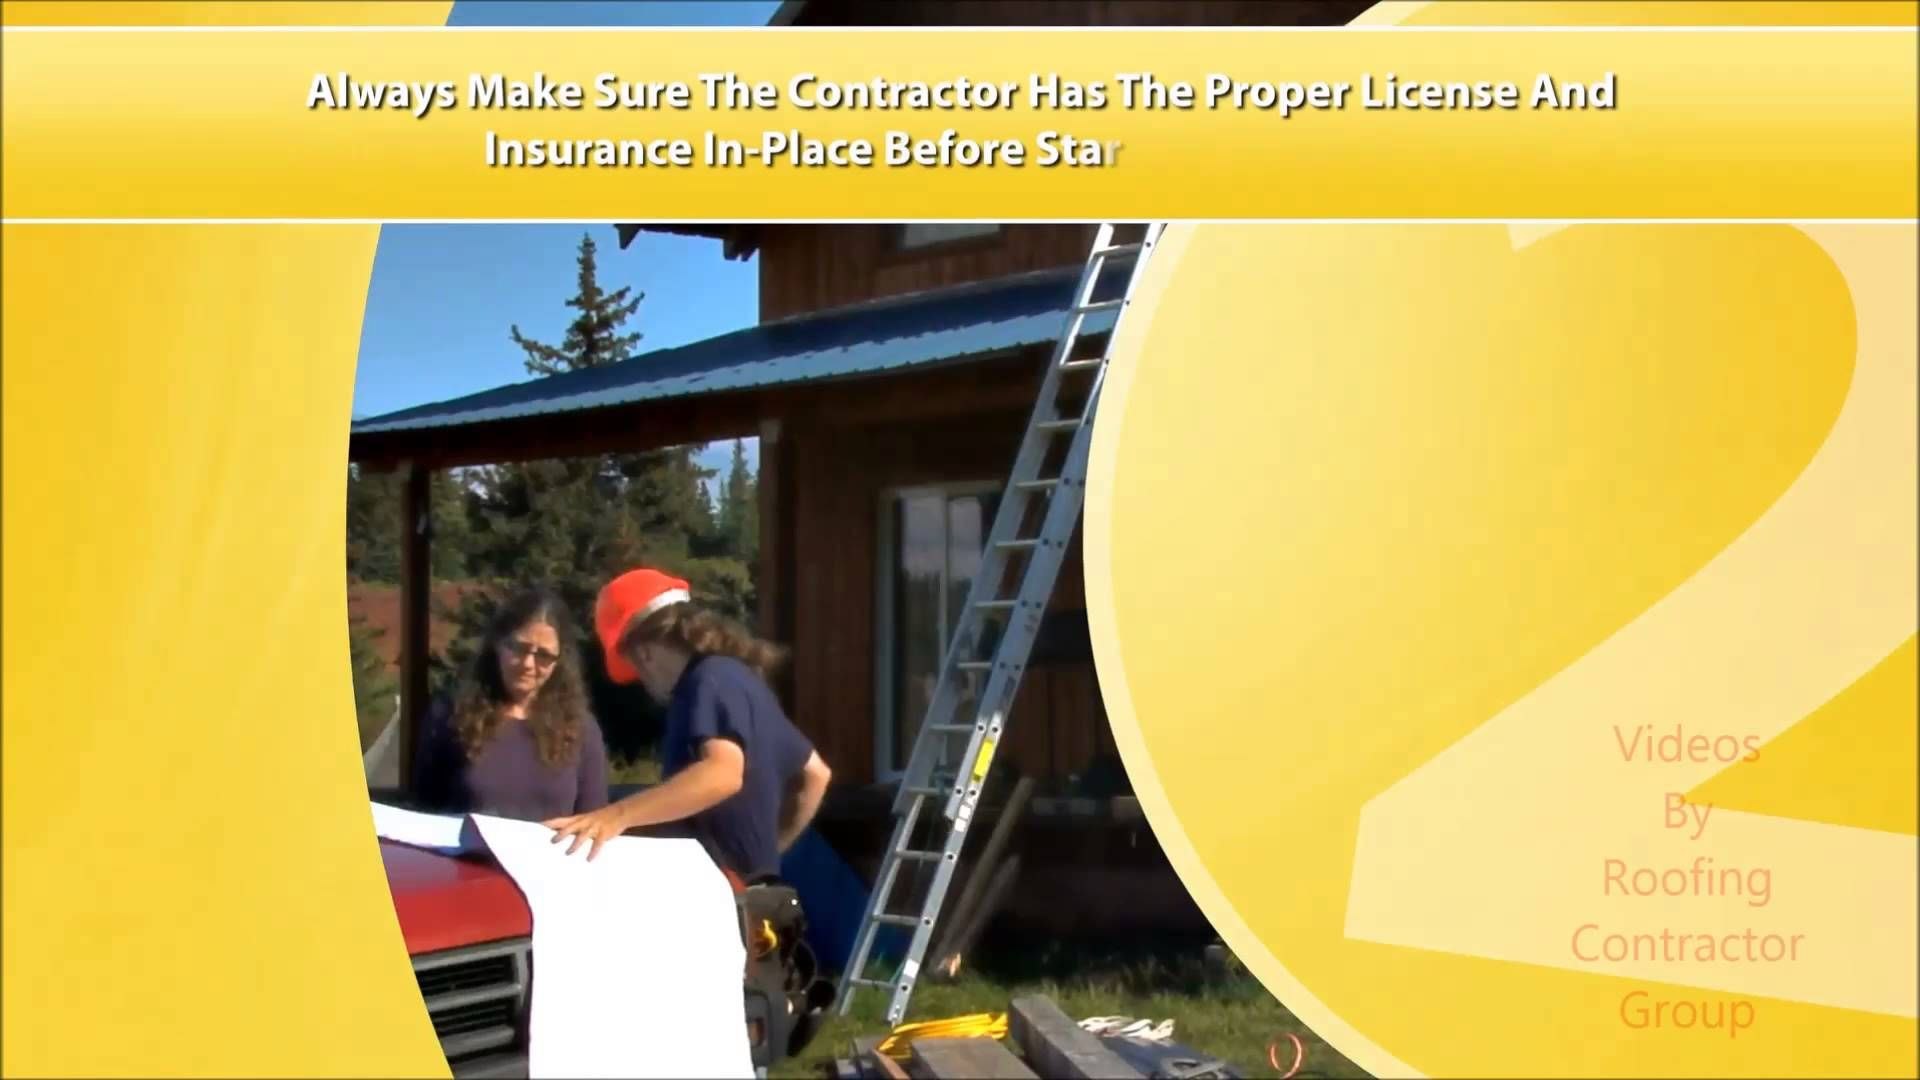 Best Roofing Fort Lauderdale Tricks And Tips For Repairing Your Roof People Don T Spend A Lot Of Time Considering The Roo Roofing Contractors Cool Roof Roofer